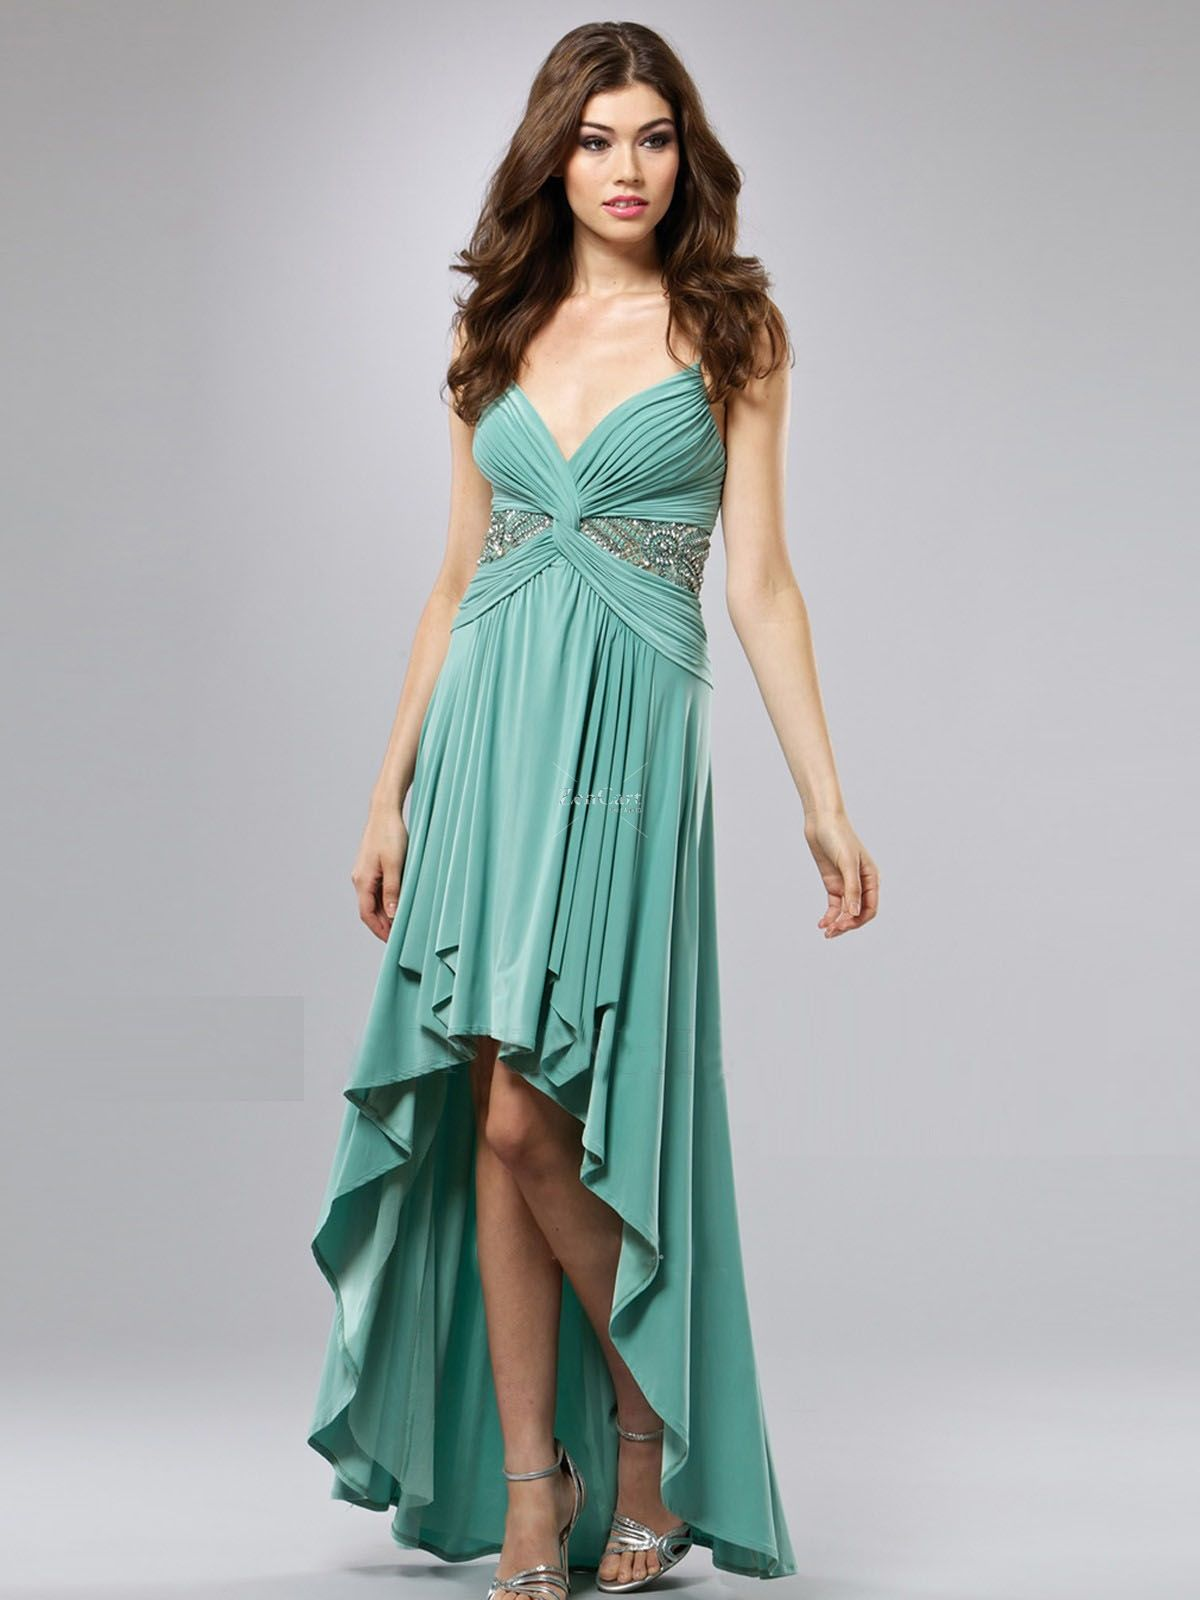 images of turquoise high low dresses - Google Search | cheyennes ...